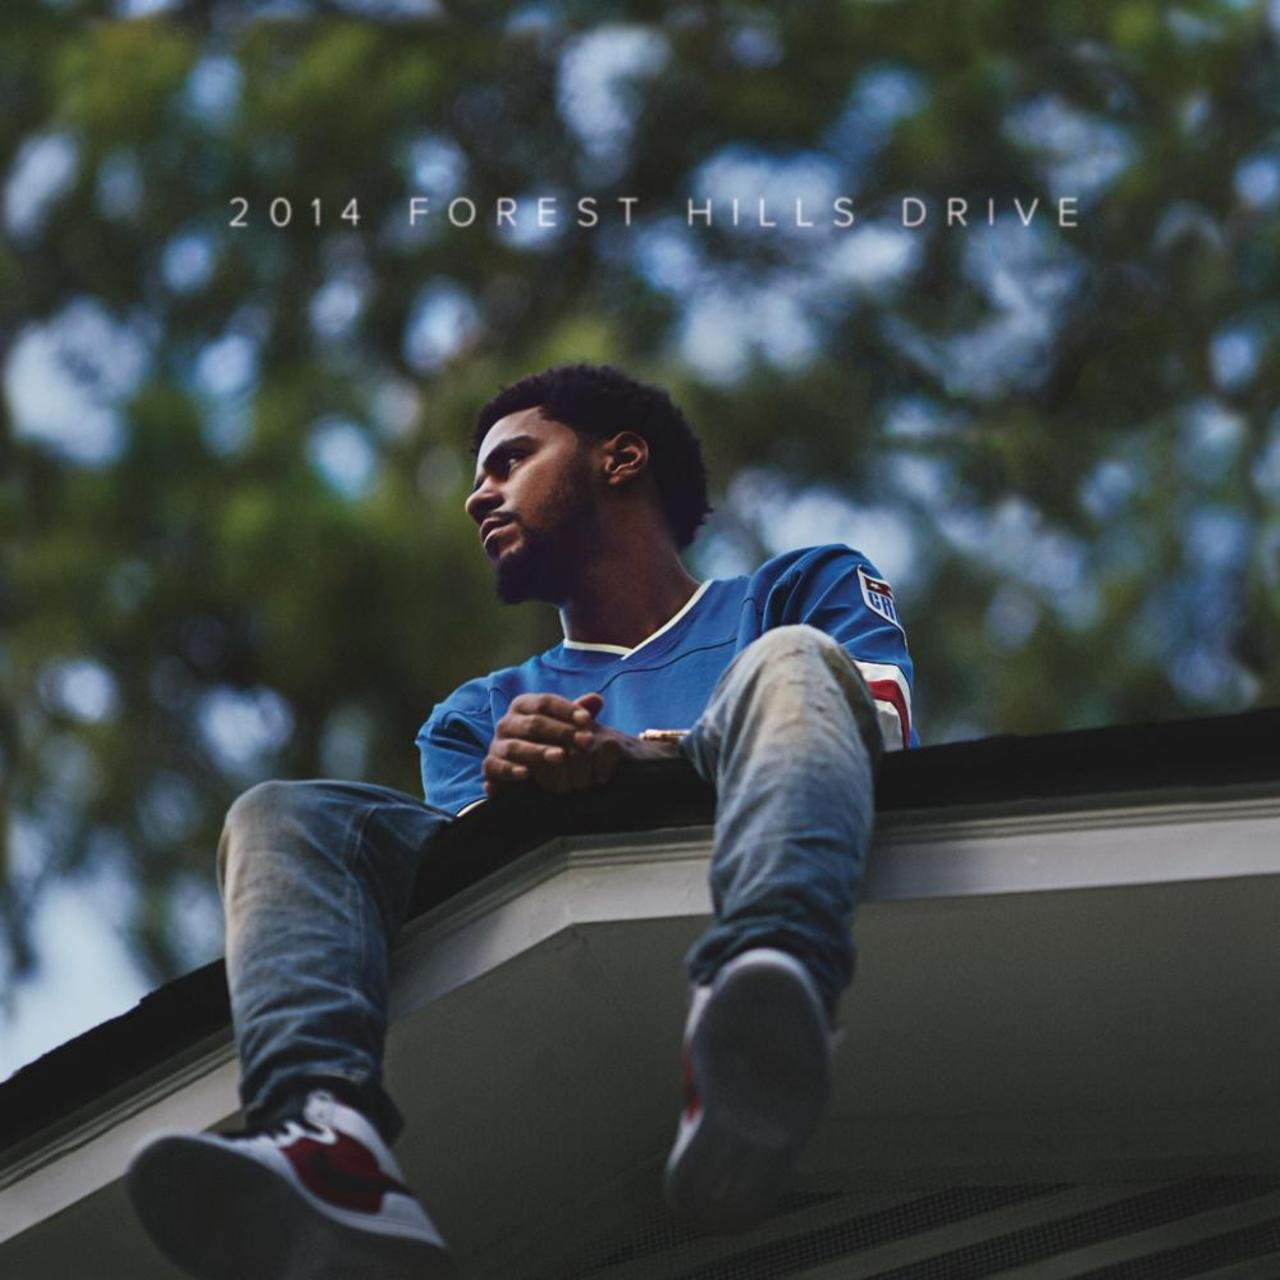 2014 Forest Hills Drive (Clean)